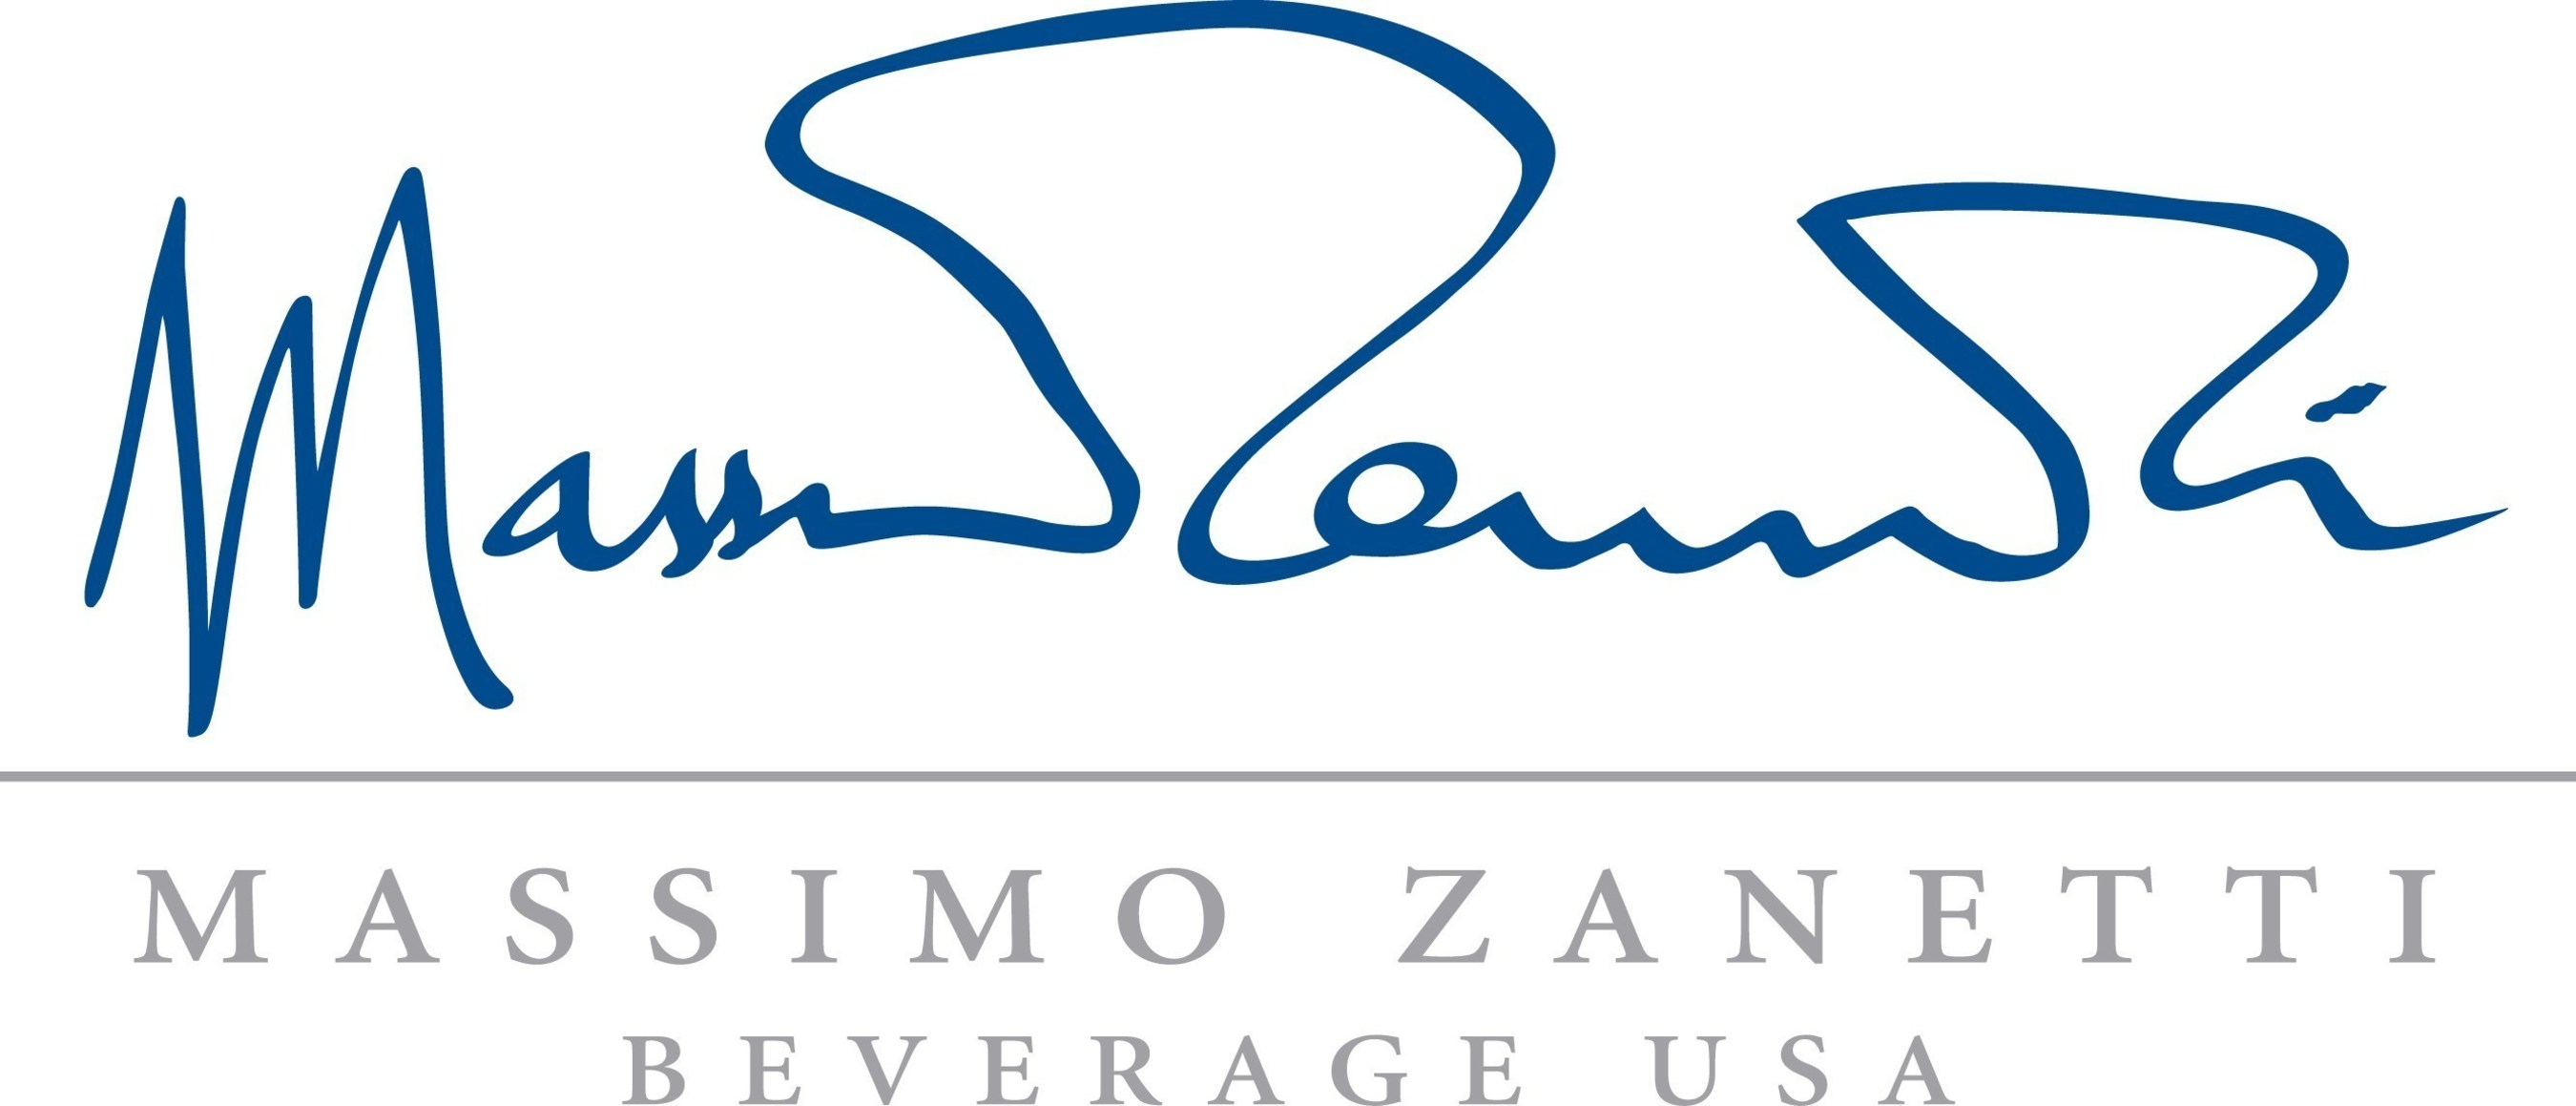 Massimo Zanetti Beverage USA is among the nation's largest coffee roasters, with nationally recognized retail brands including Chock full o'Nuts(R), Hills Bros.(R), Segafredo Zanetti(R), Kauai Coffee(R).   www.mzb-usa.com